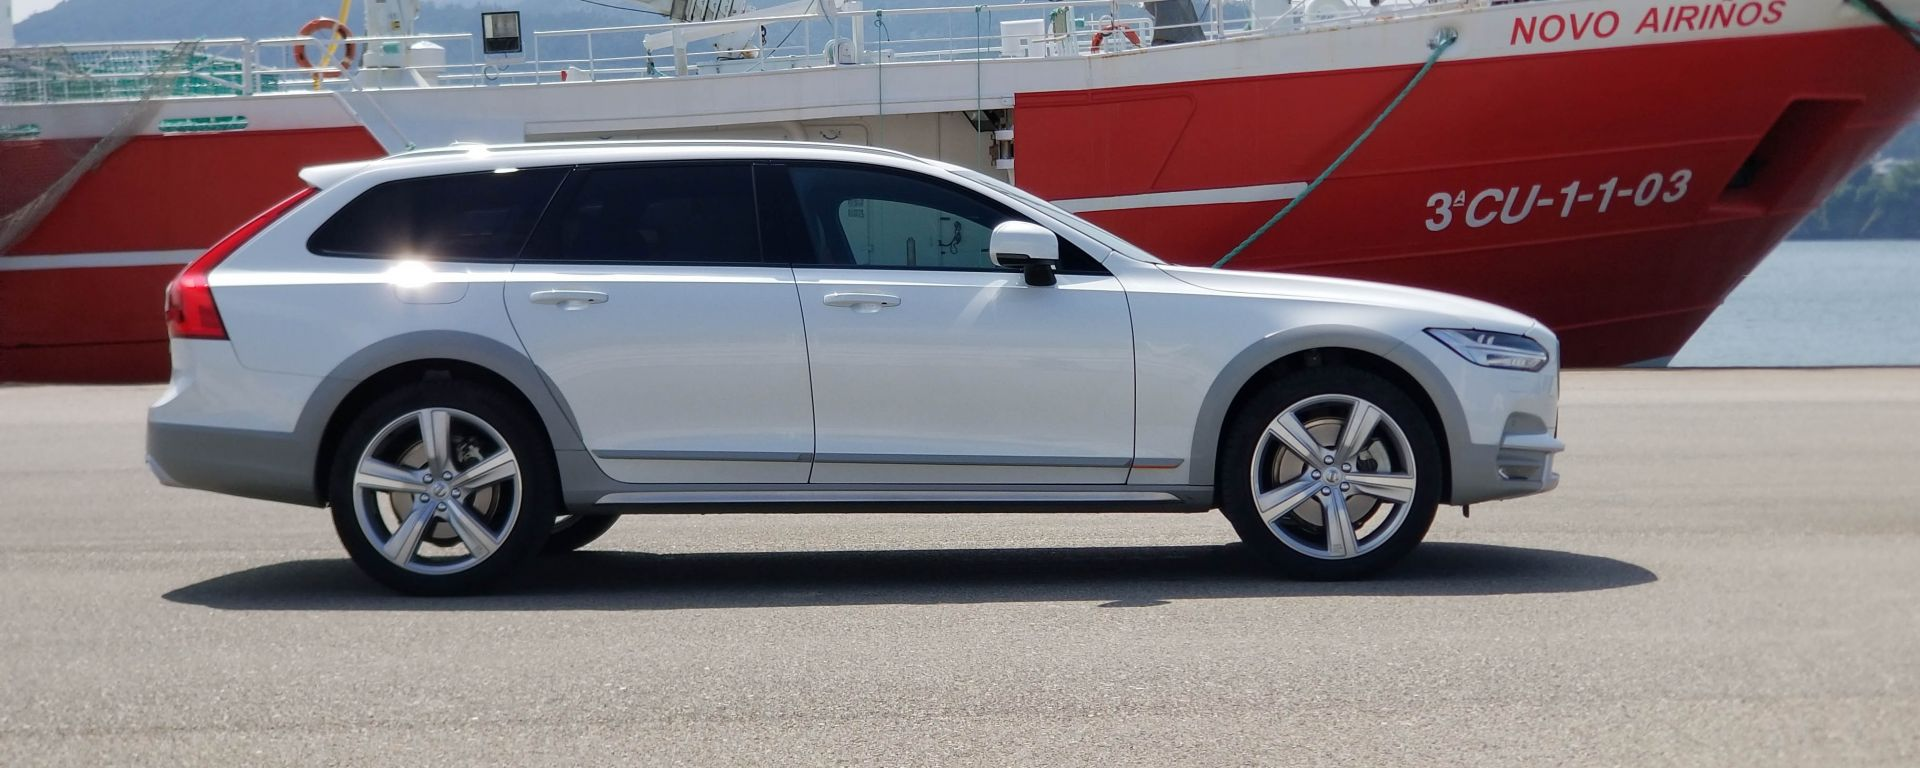 Volvo V90 Cross Country D5 Ocean Race: vista lato destro